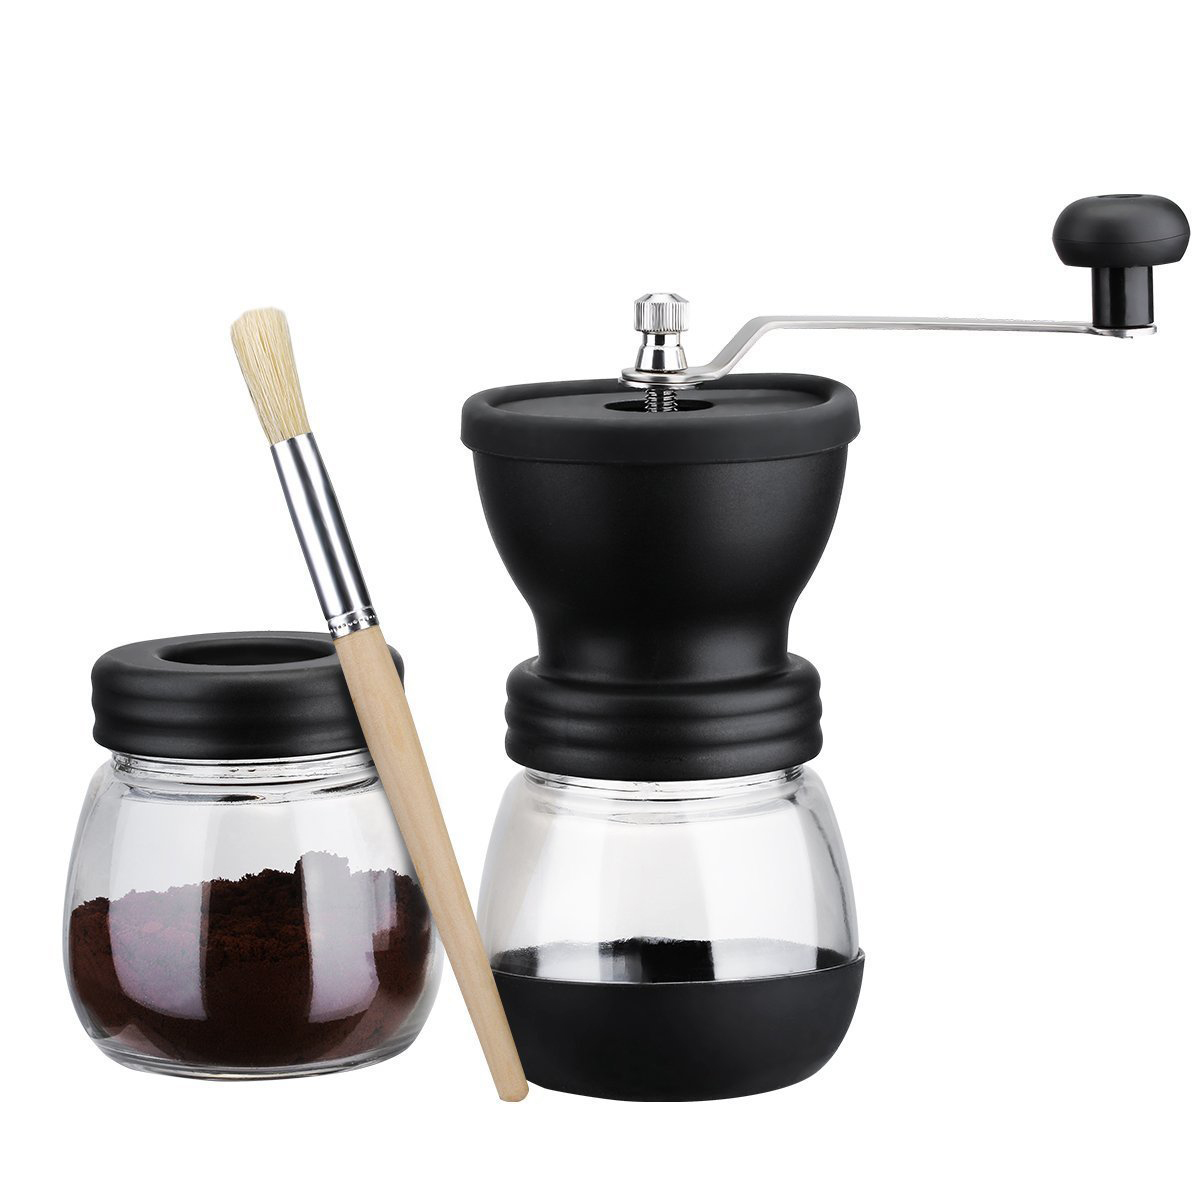 Coffee Grinder Market Latest Advancements, Trends and Demand ...